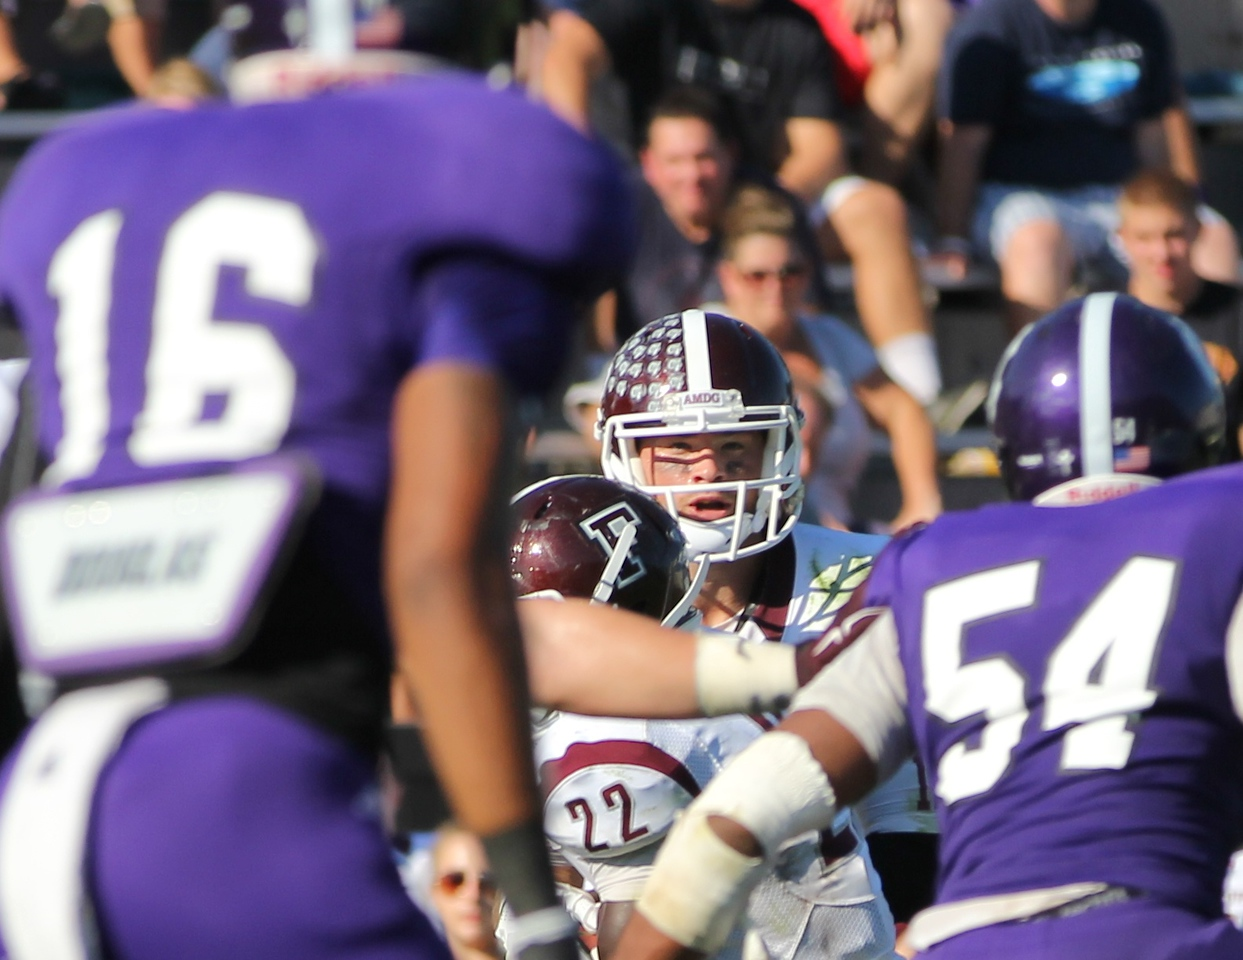 Fordham @ Holy Cross 45-16 Win 2014 400